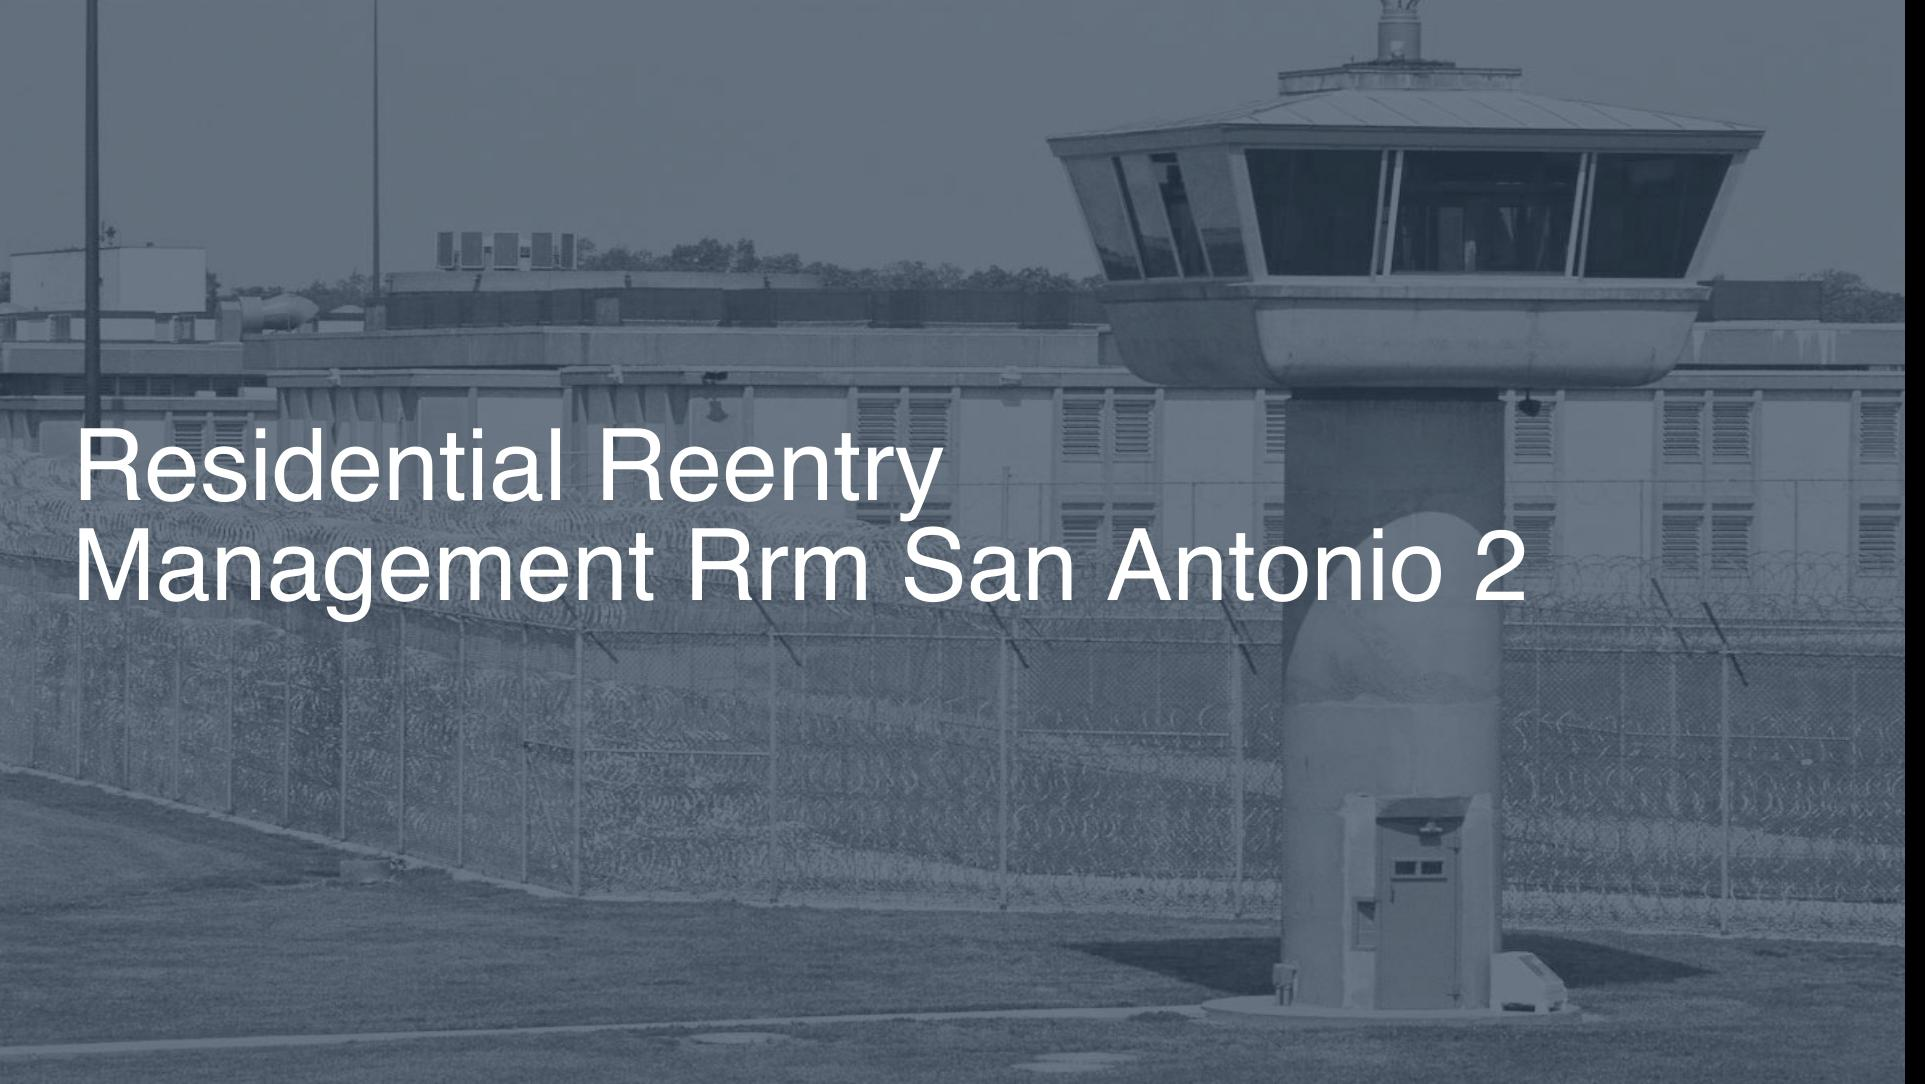 Residential Reentry Management (RRM) - San Antonio correctional facility picture